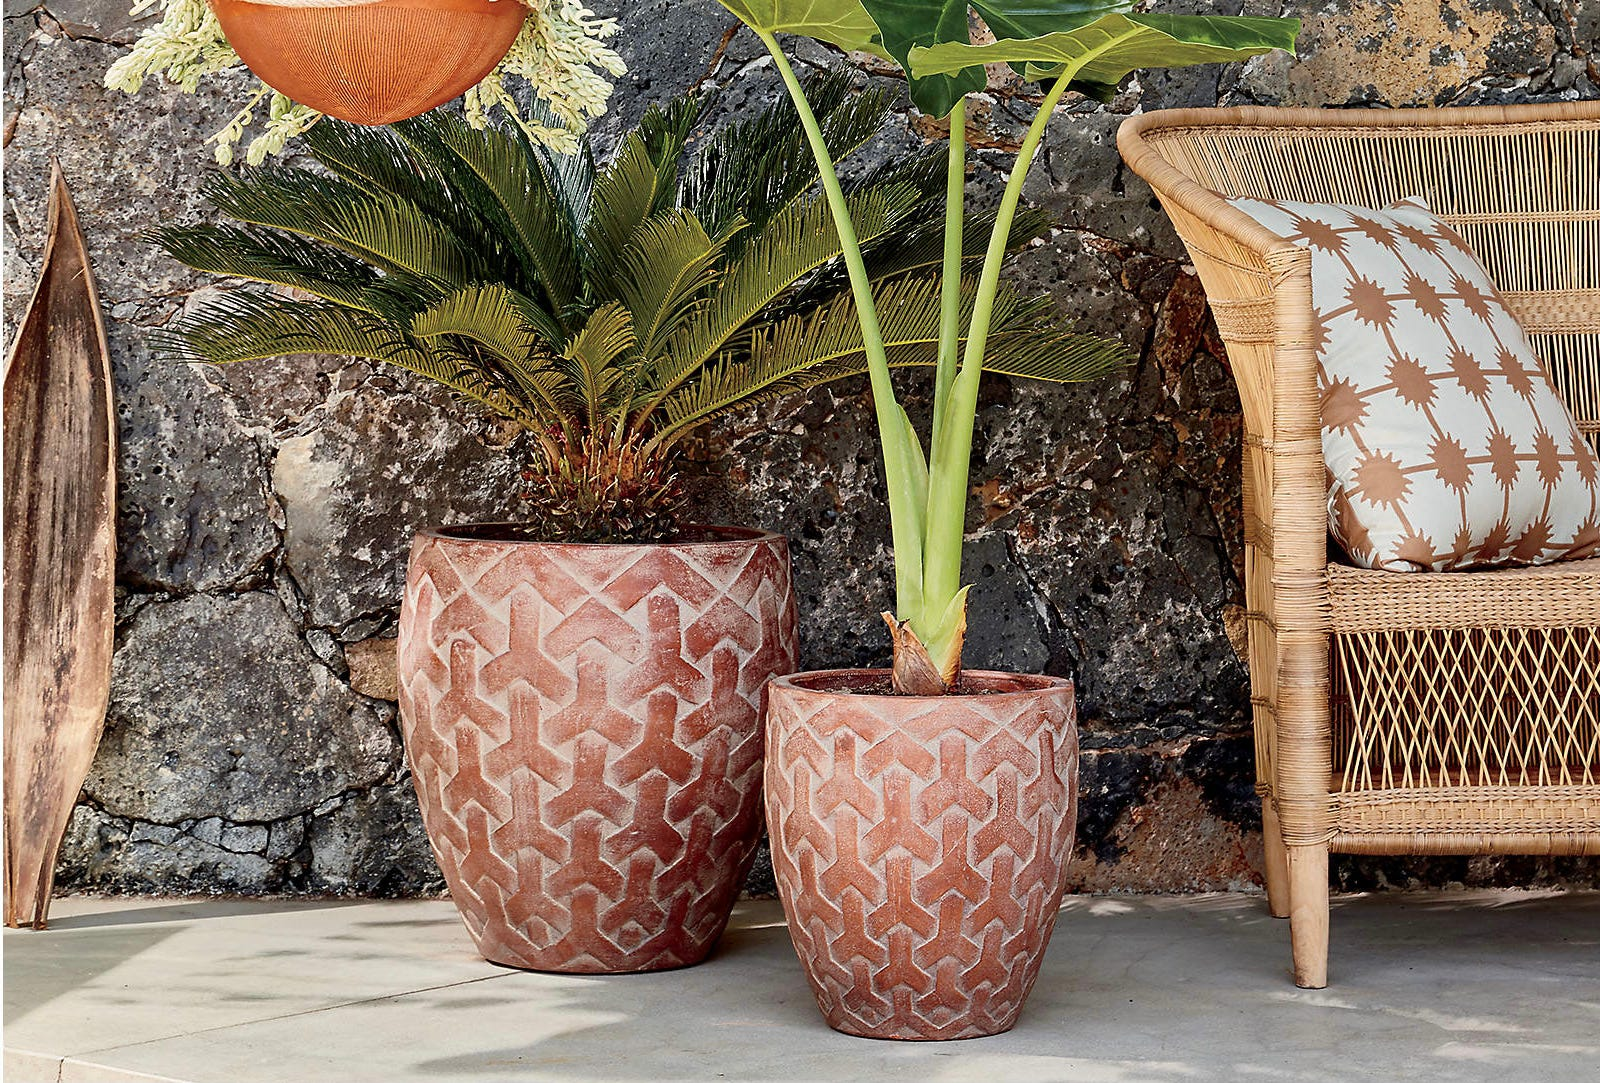 A pair of patterned terracotta planters next to an outdoor chair.